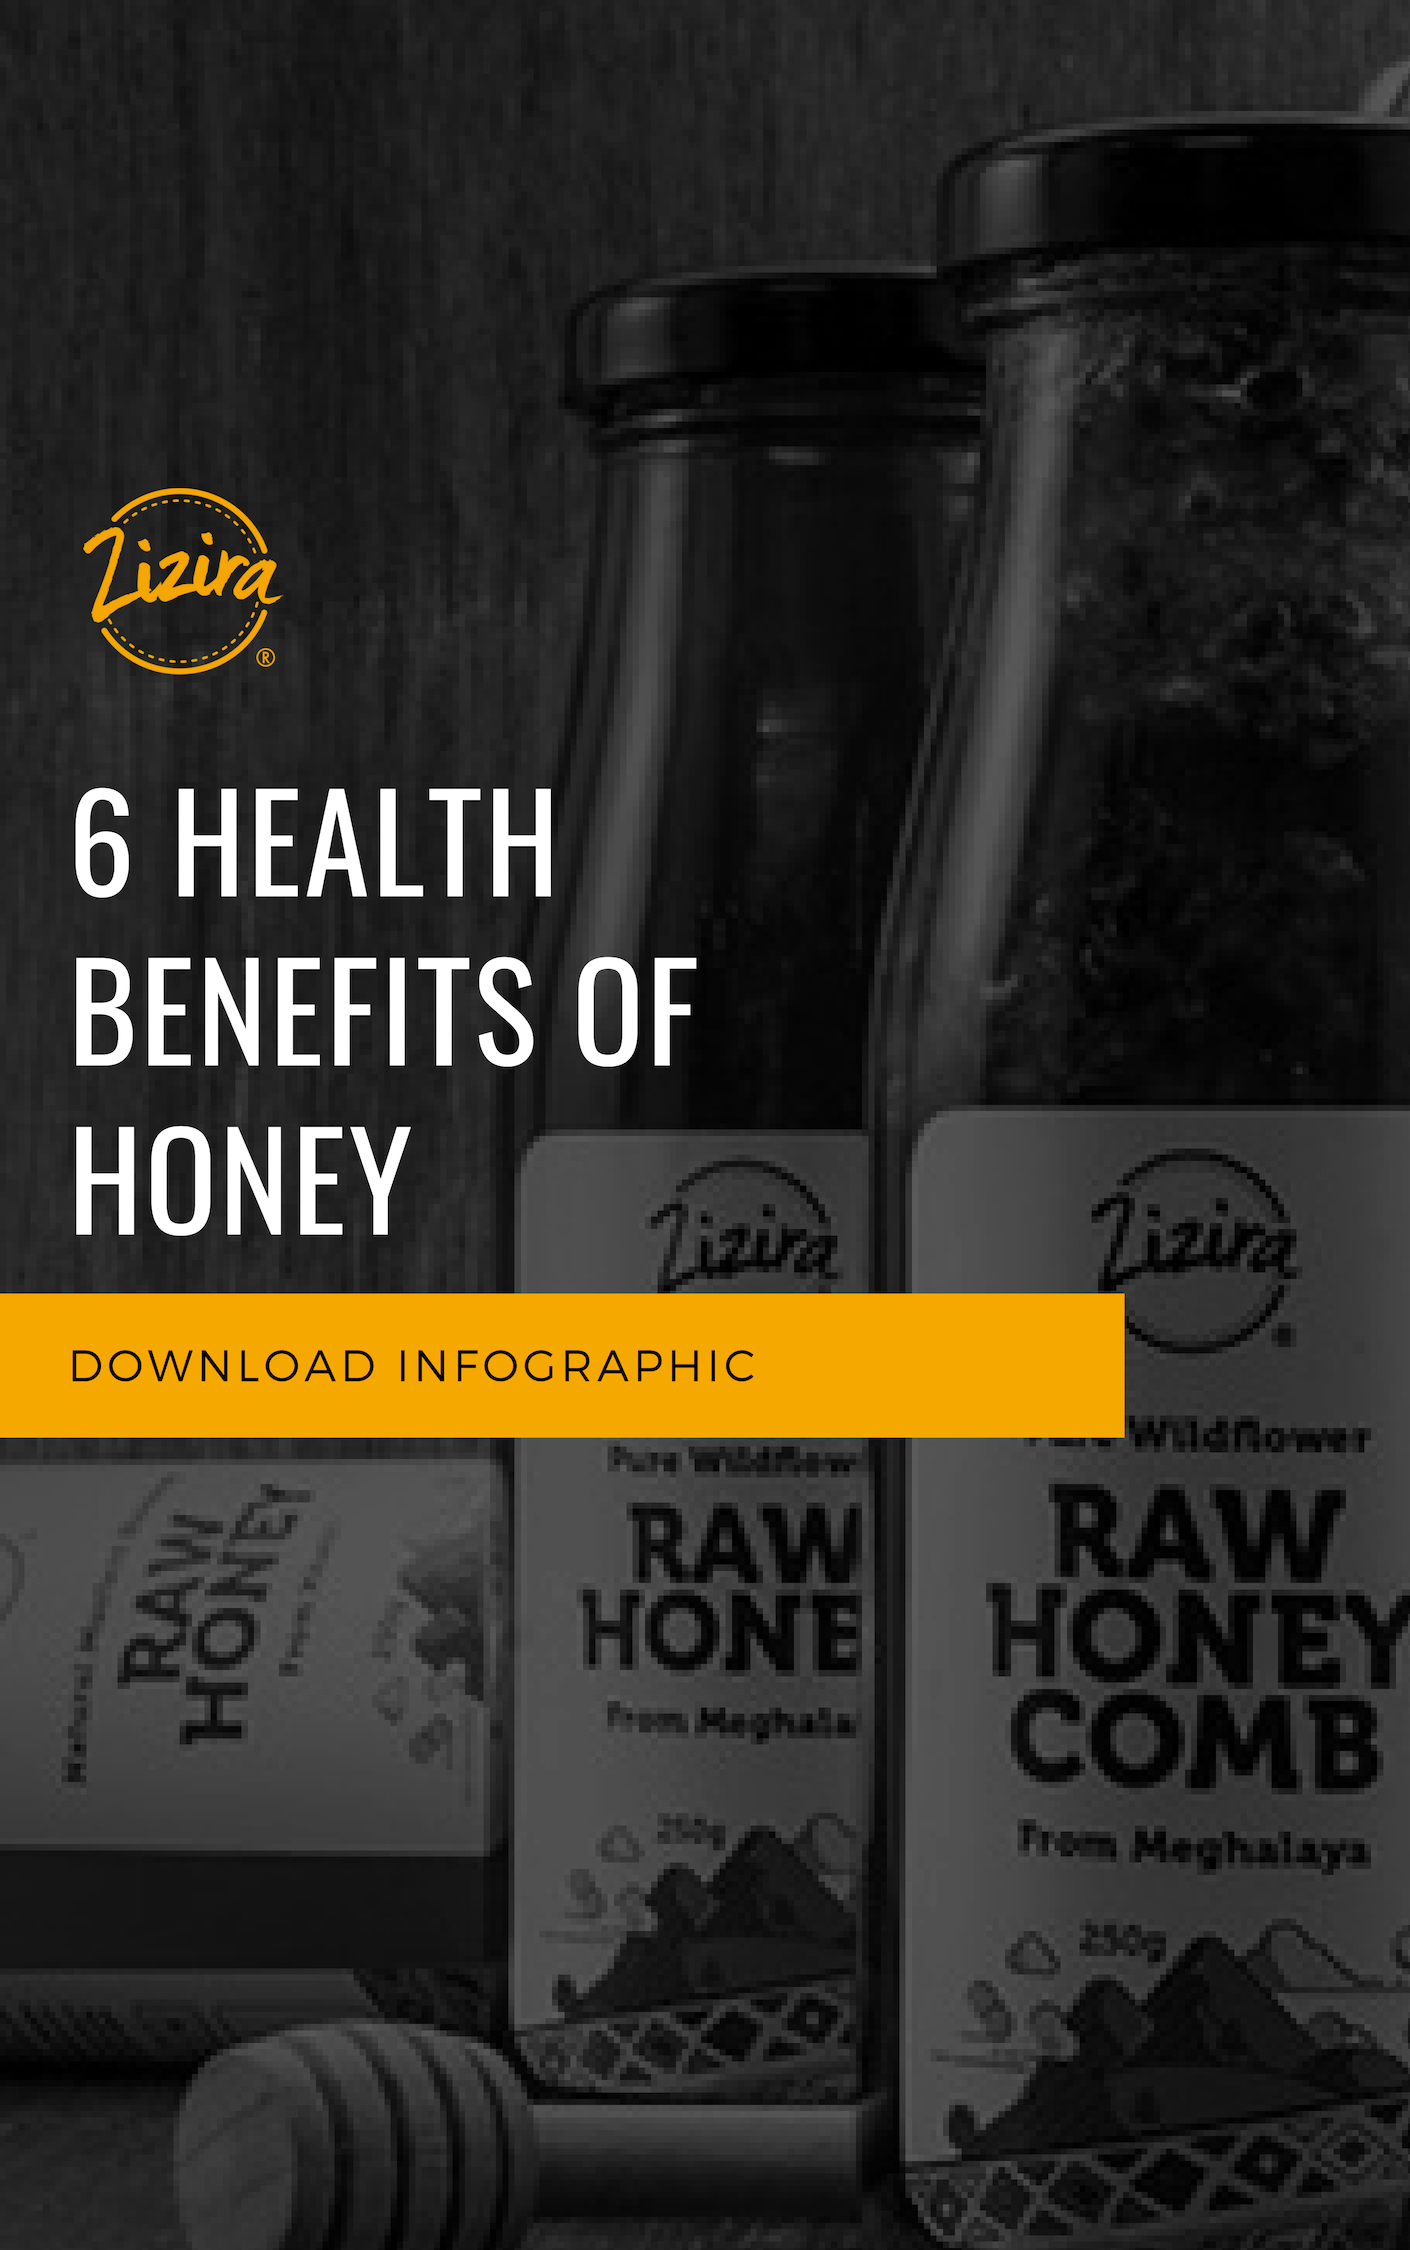 6 health benefits of Honey